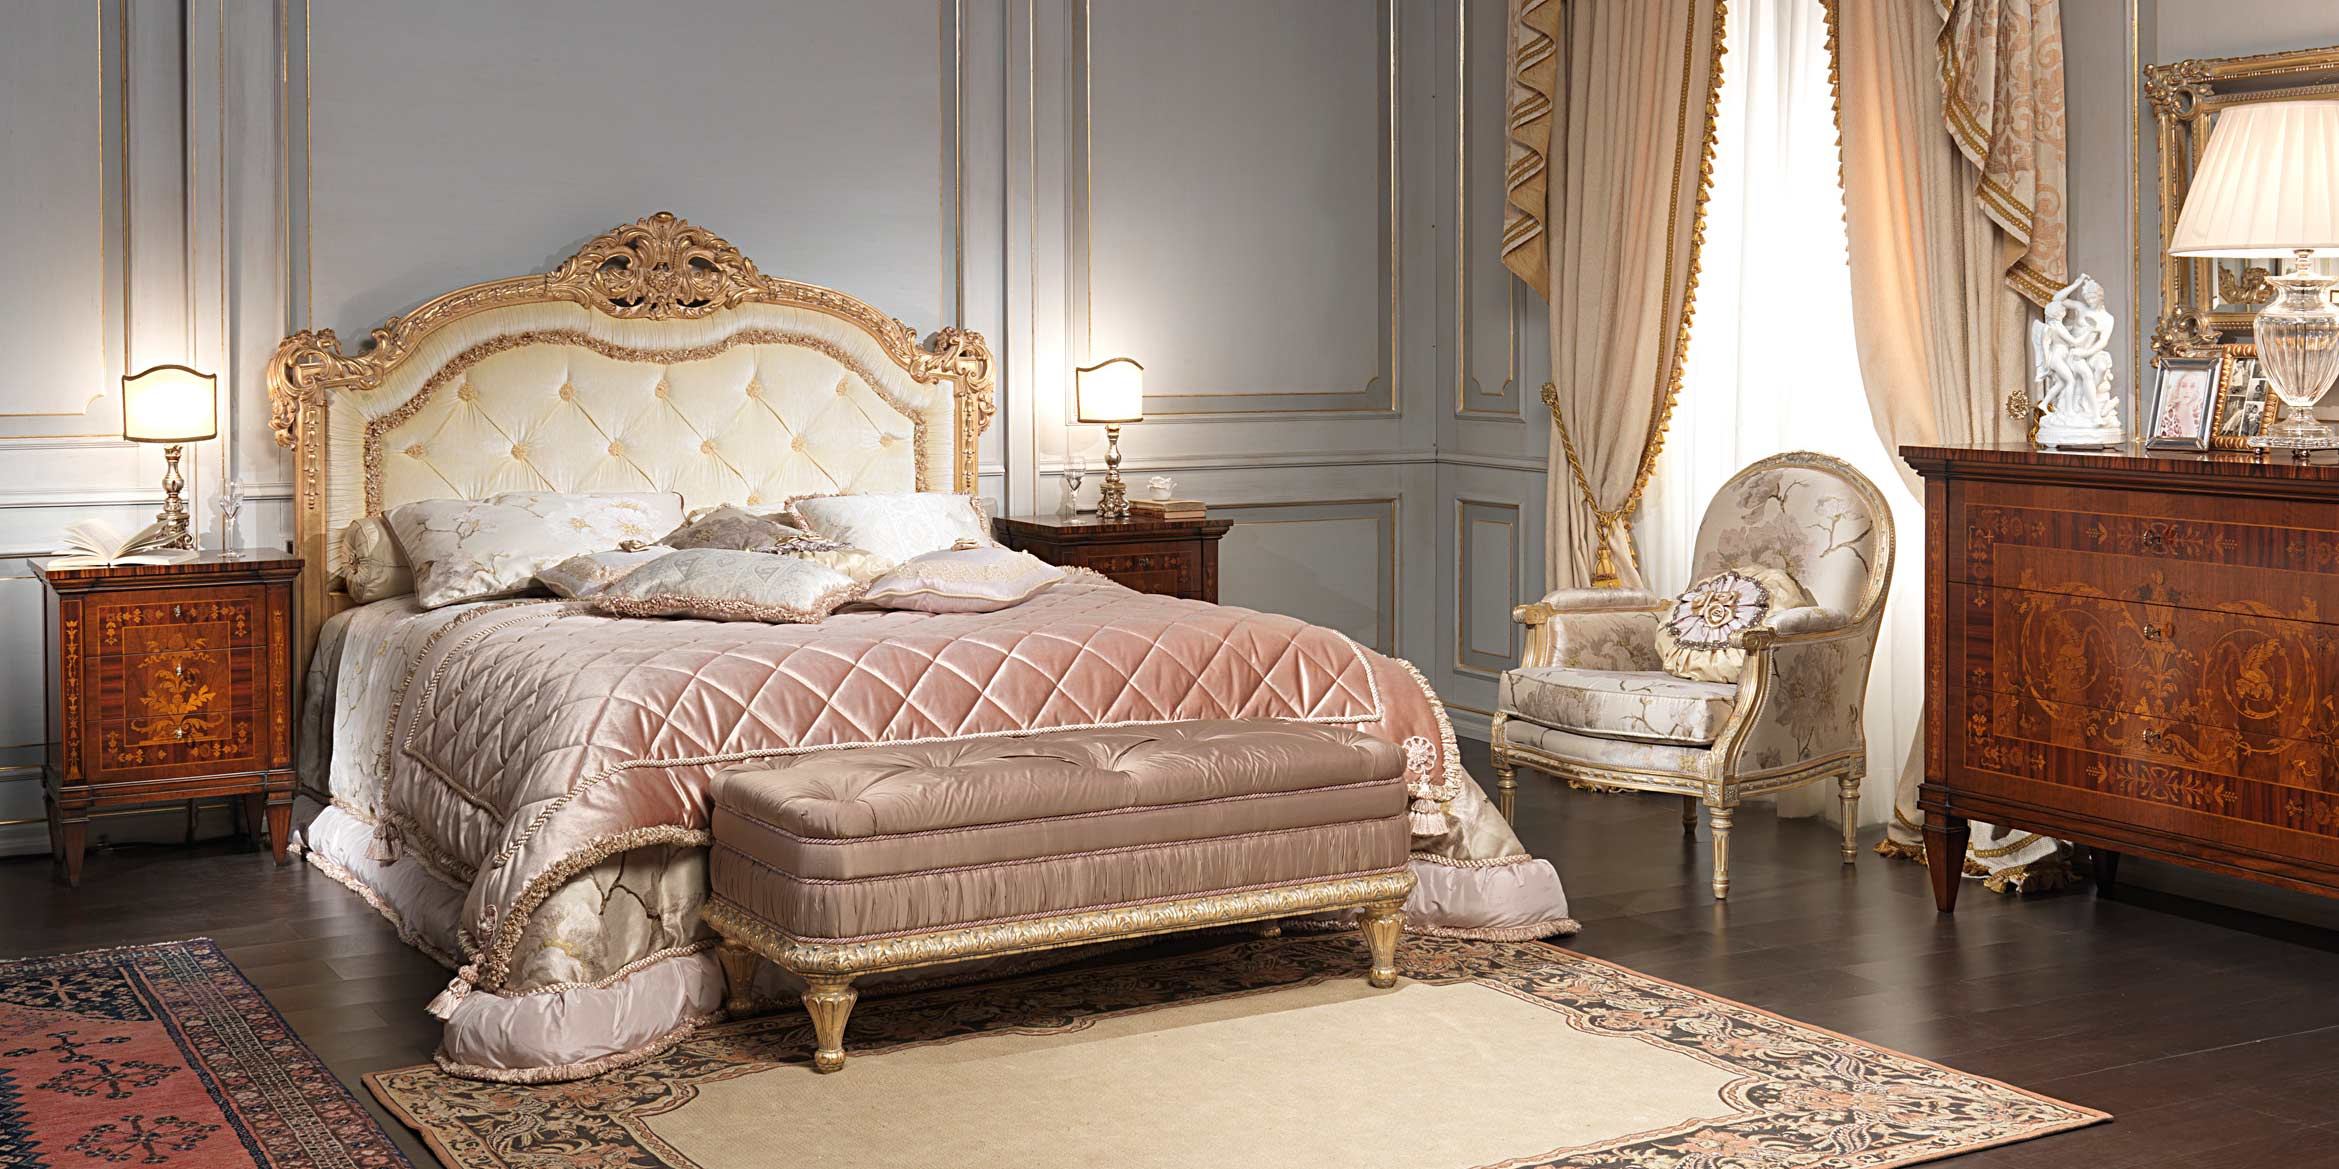 Image Result For Liberty Bedroom Furniture